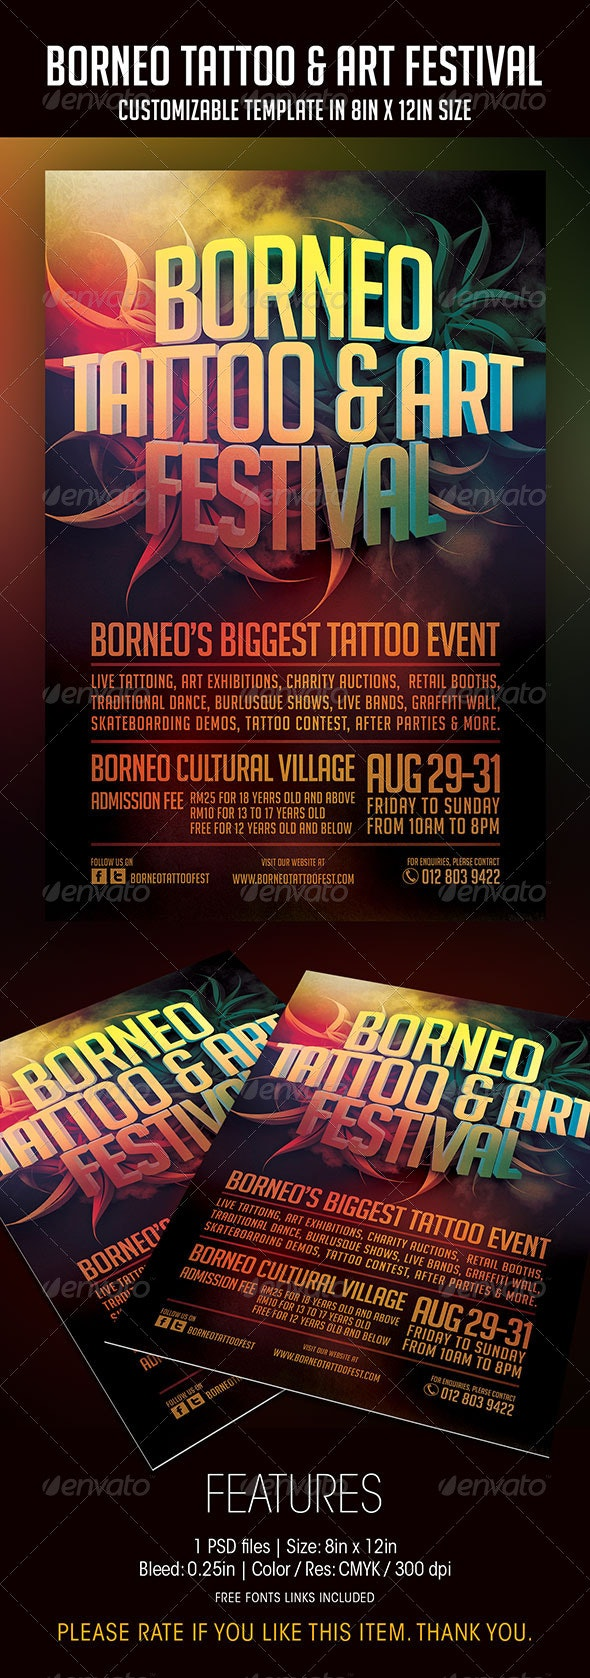 Tattoo And Art Festival Flyer - Events Flyers